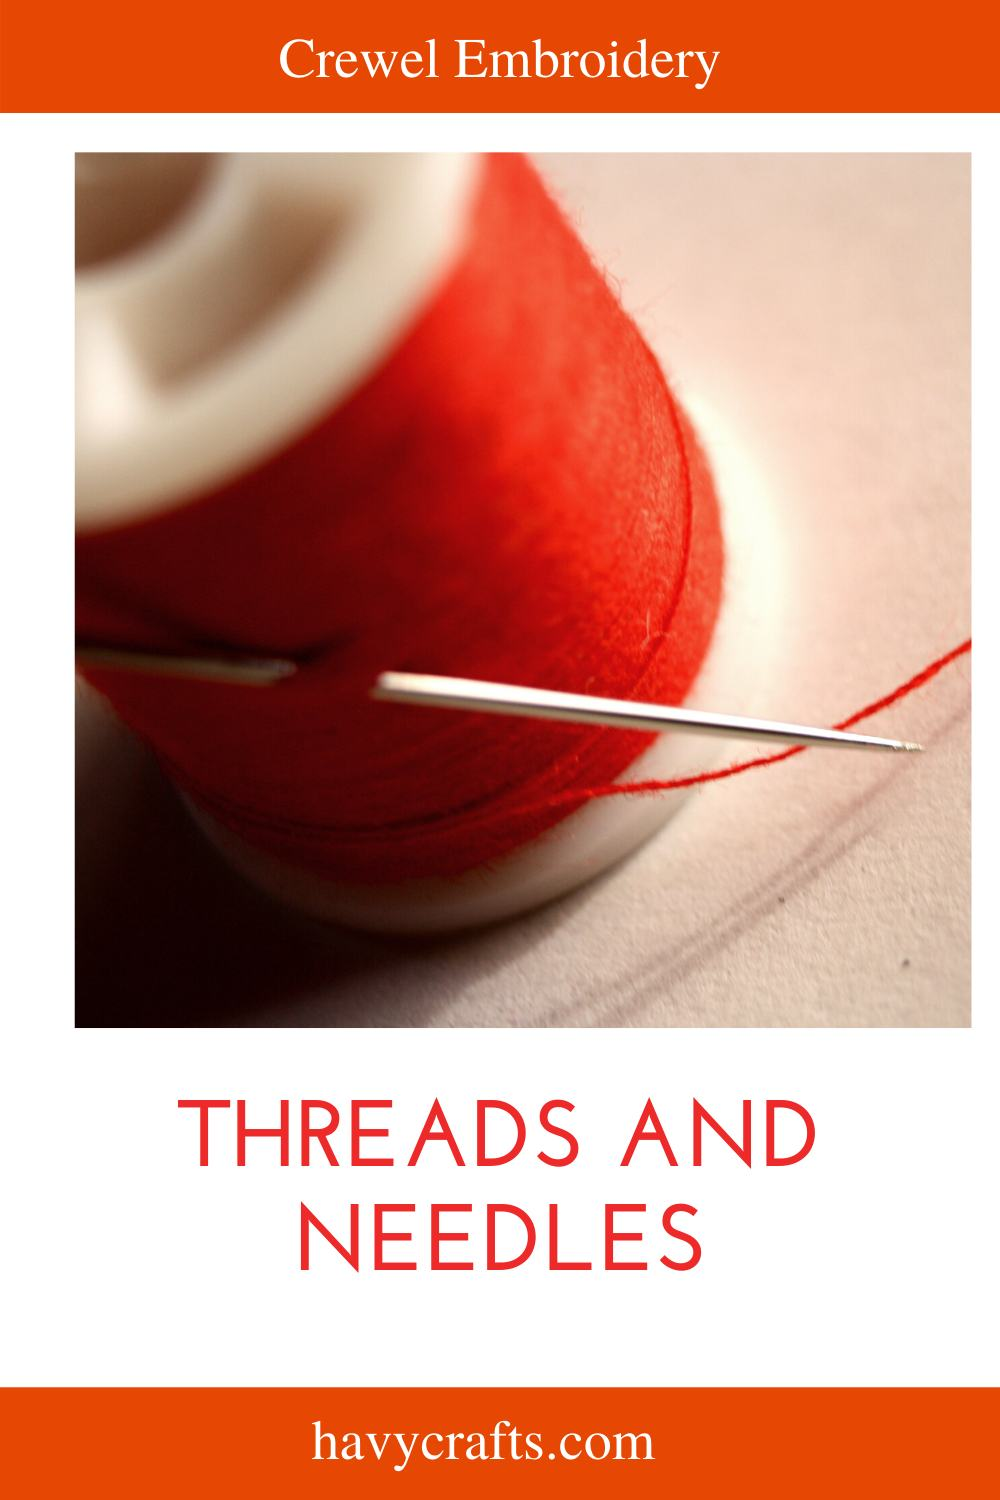 How to Choose Threads and Needles for Crewel Embroidery